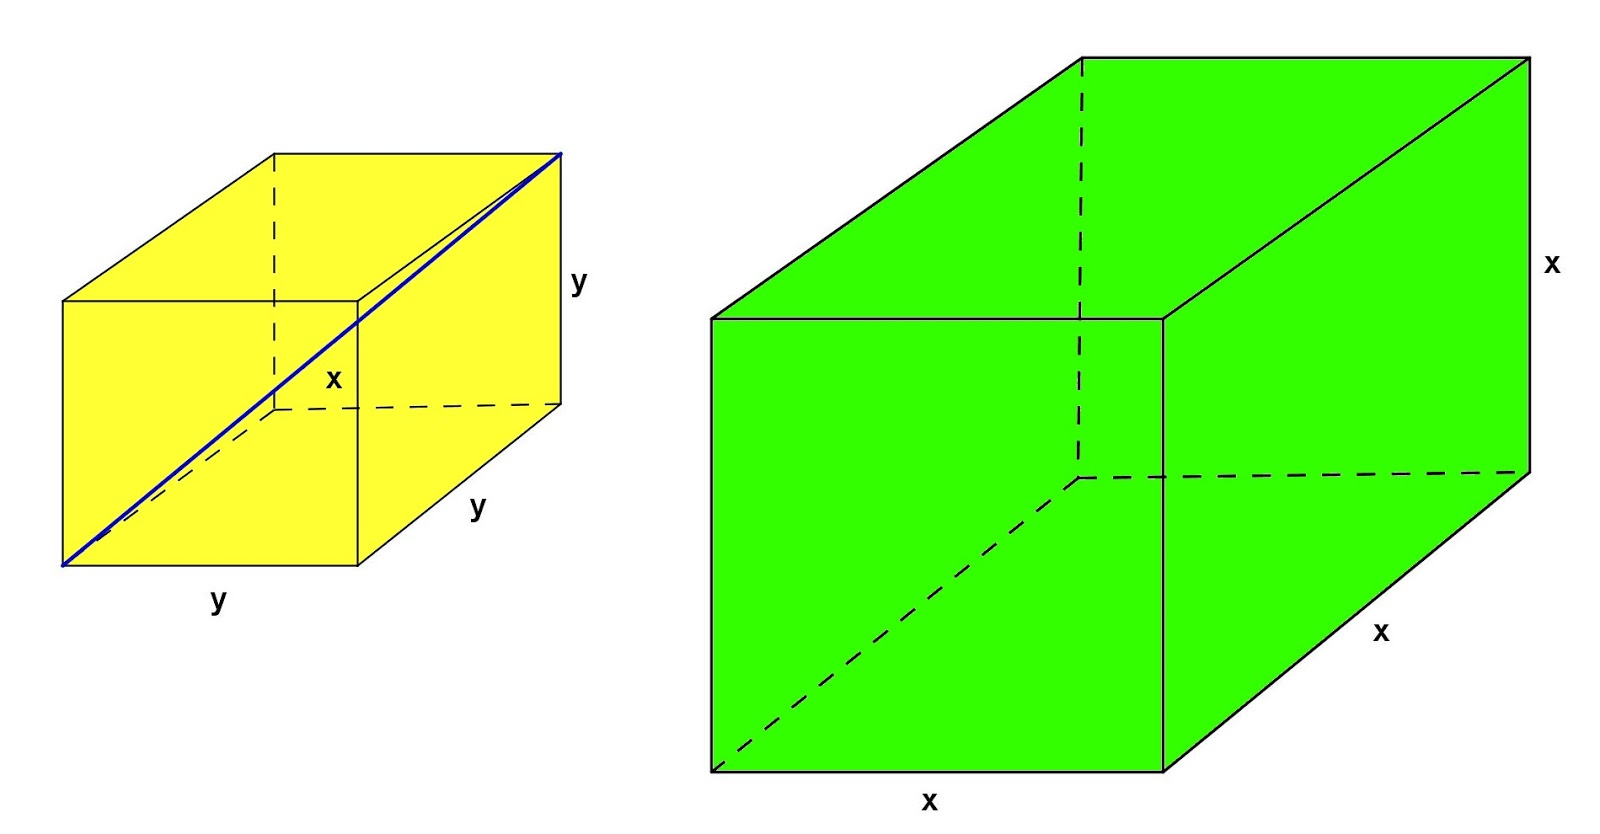 how to find the voume of a cube